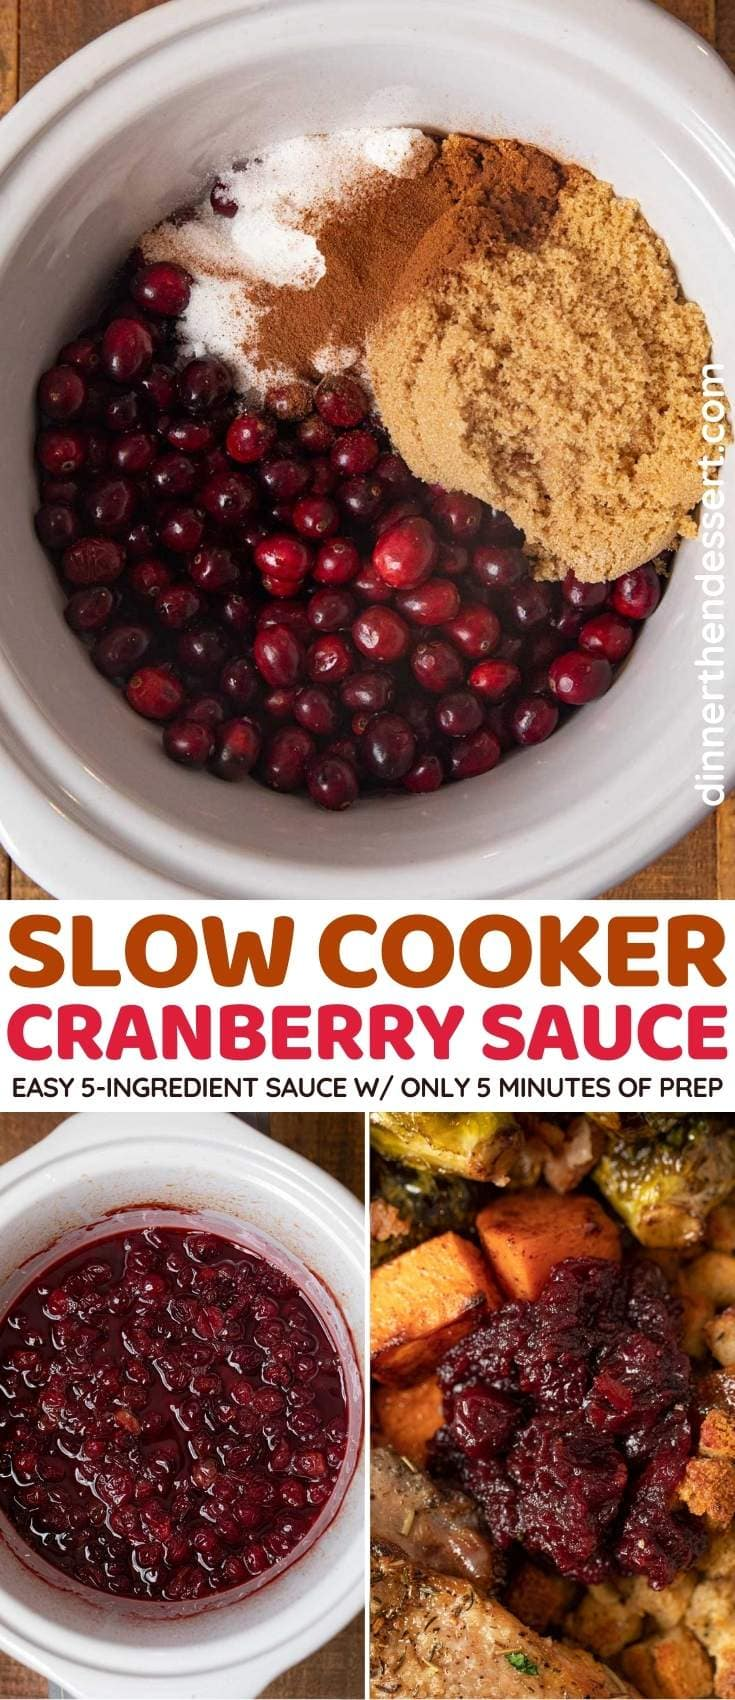 Slow Cooker Cranberry Sauce collage